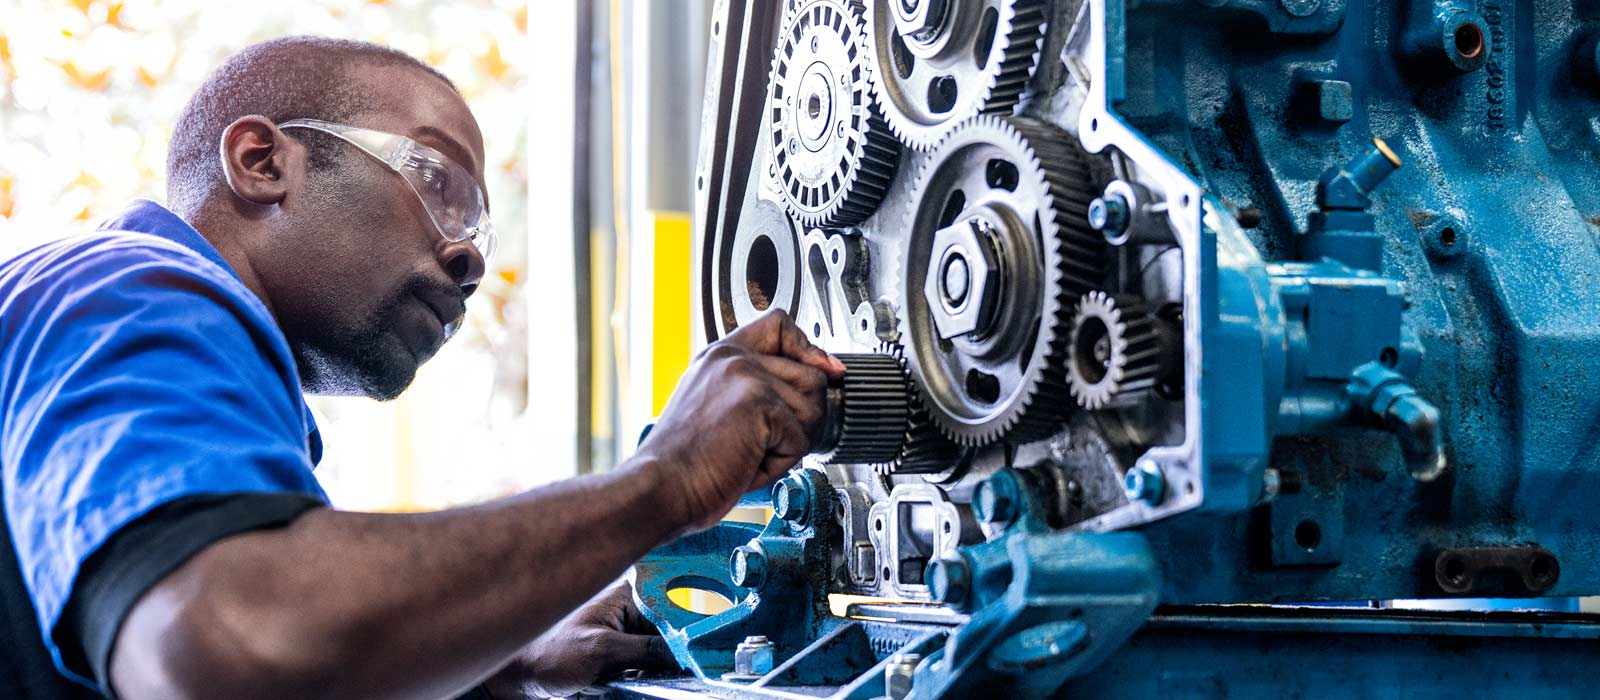 UTI diesel technician student working on an engine about diesel preventative maintenance